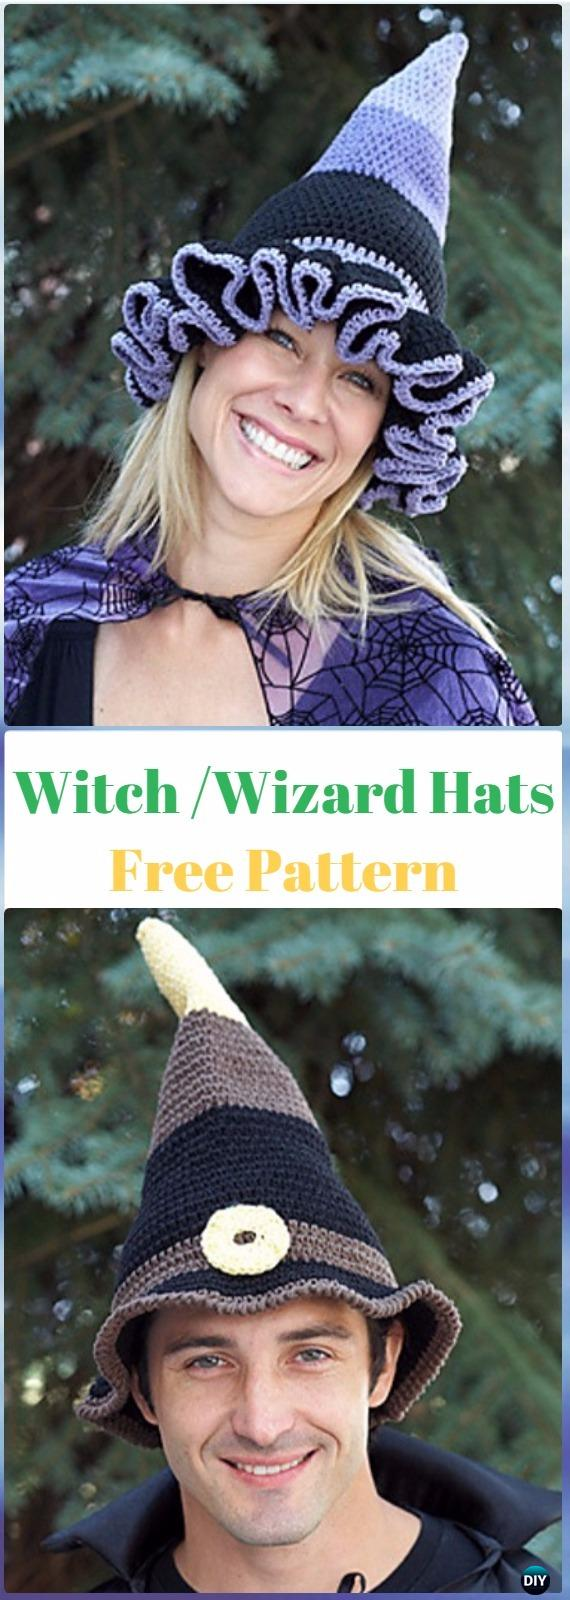 Crochet Witch or Wizard Hats Free Pattern - Crochet Halloween Hat Free Patterns